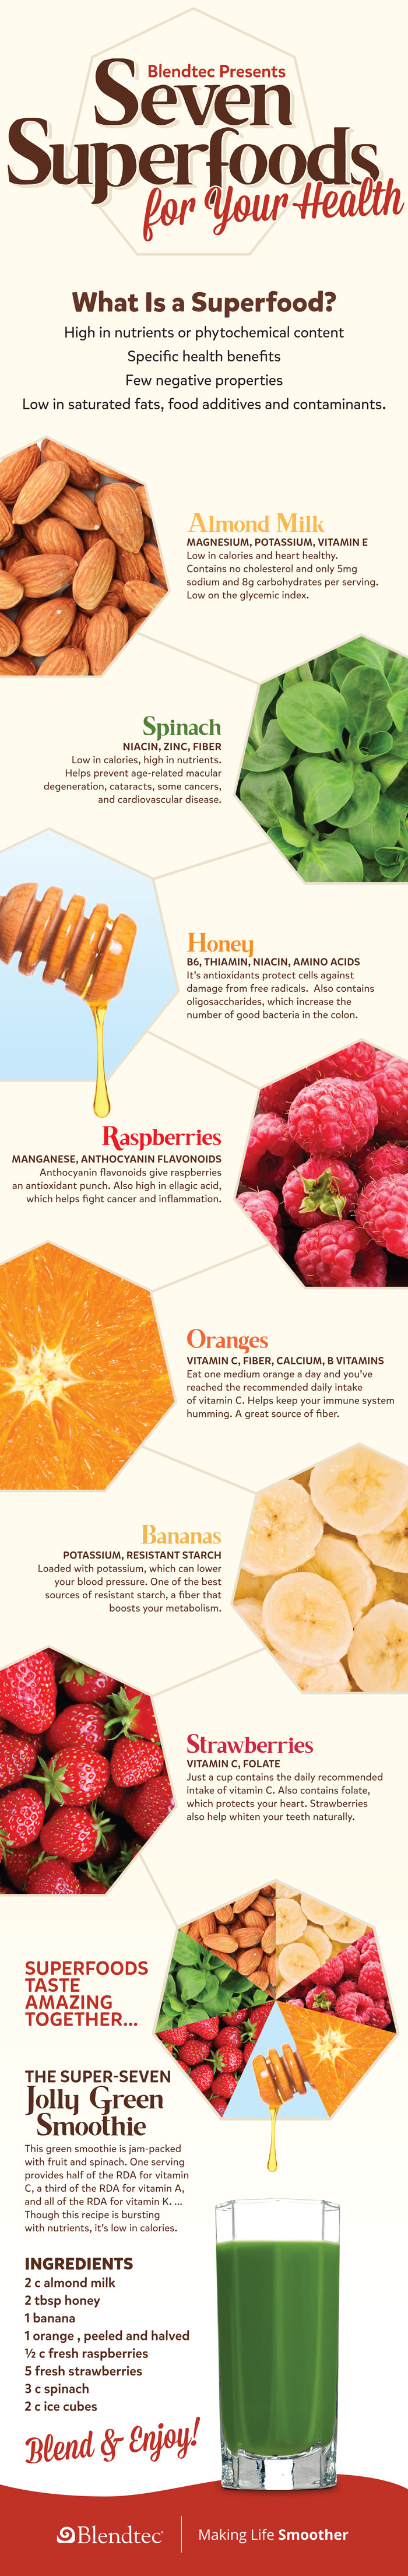 Healthy foods that you should indulge in infographic